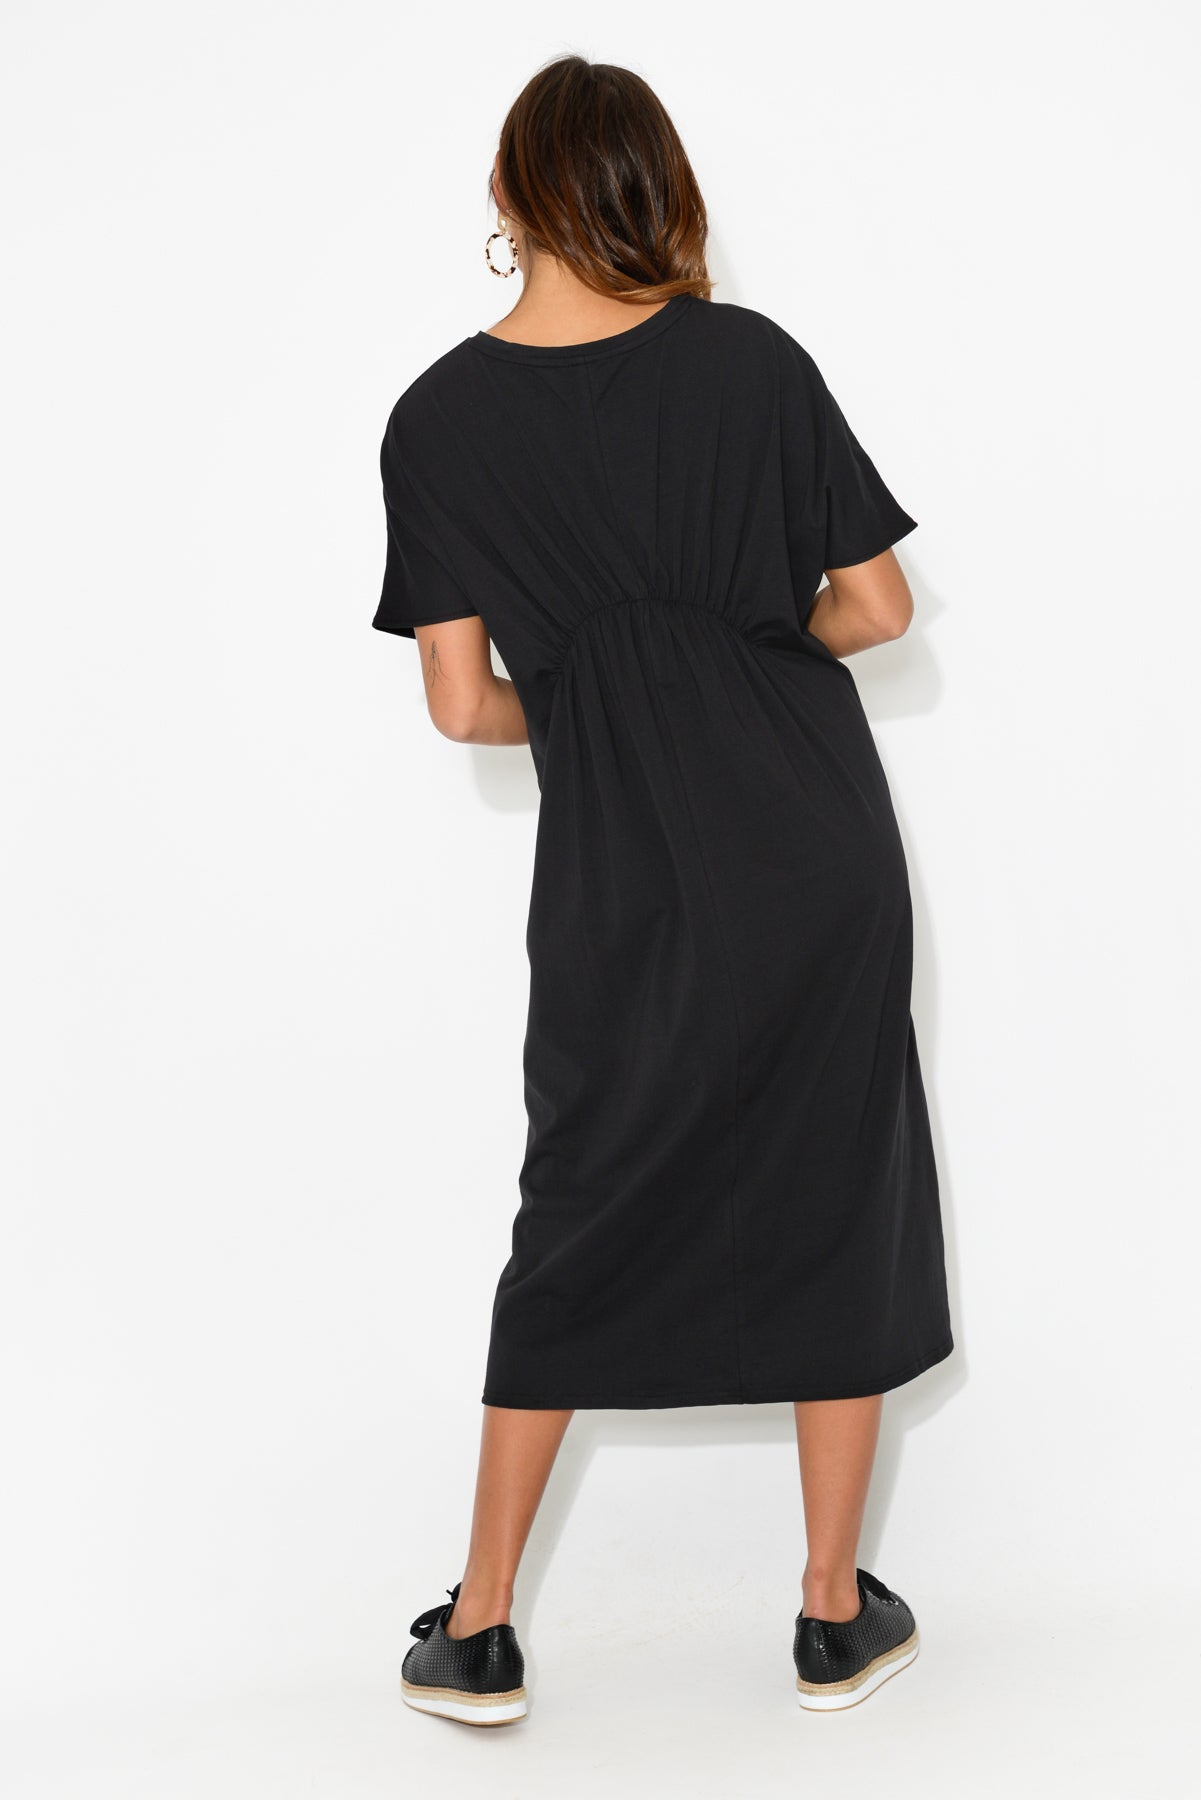 Athena Black Cotton Dress - Blue Bungalow